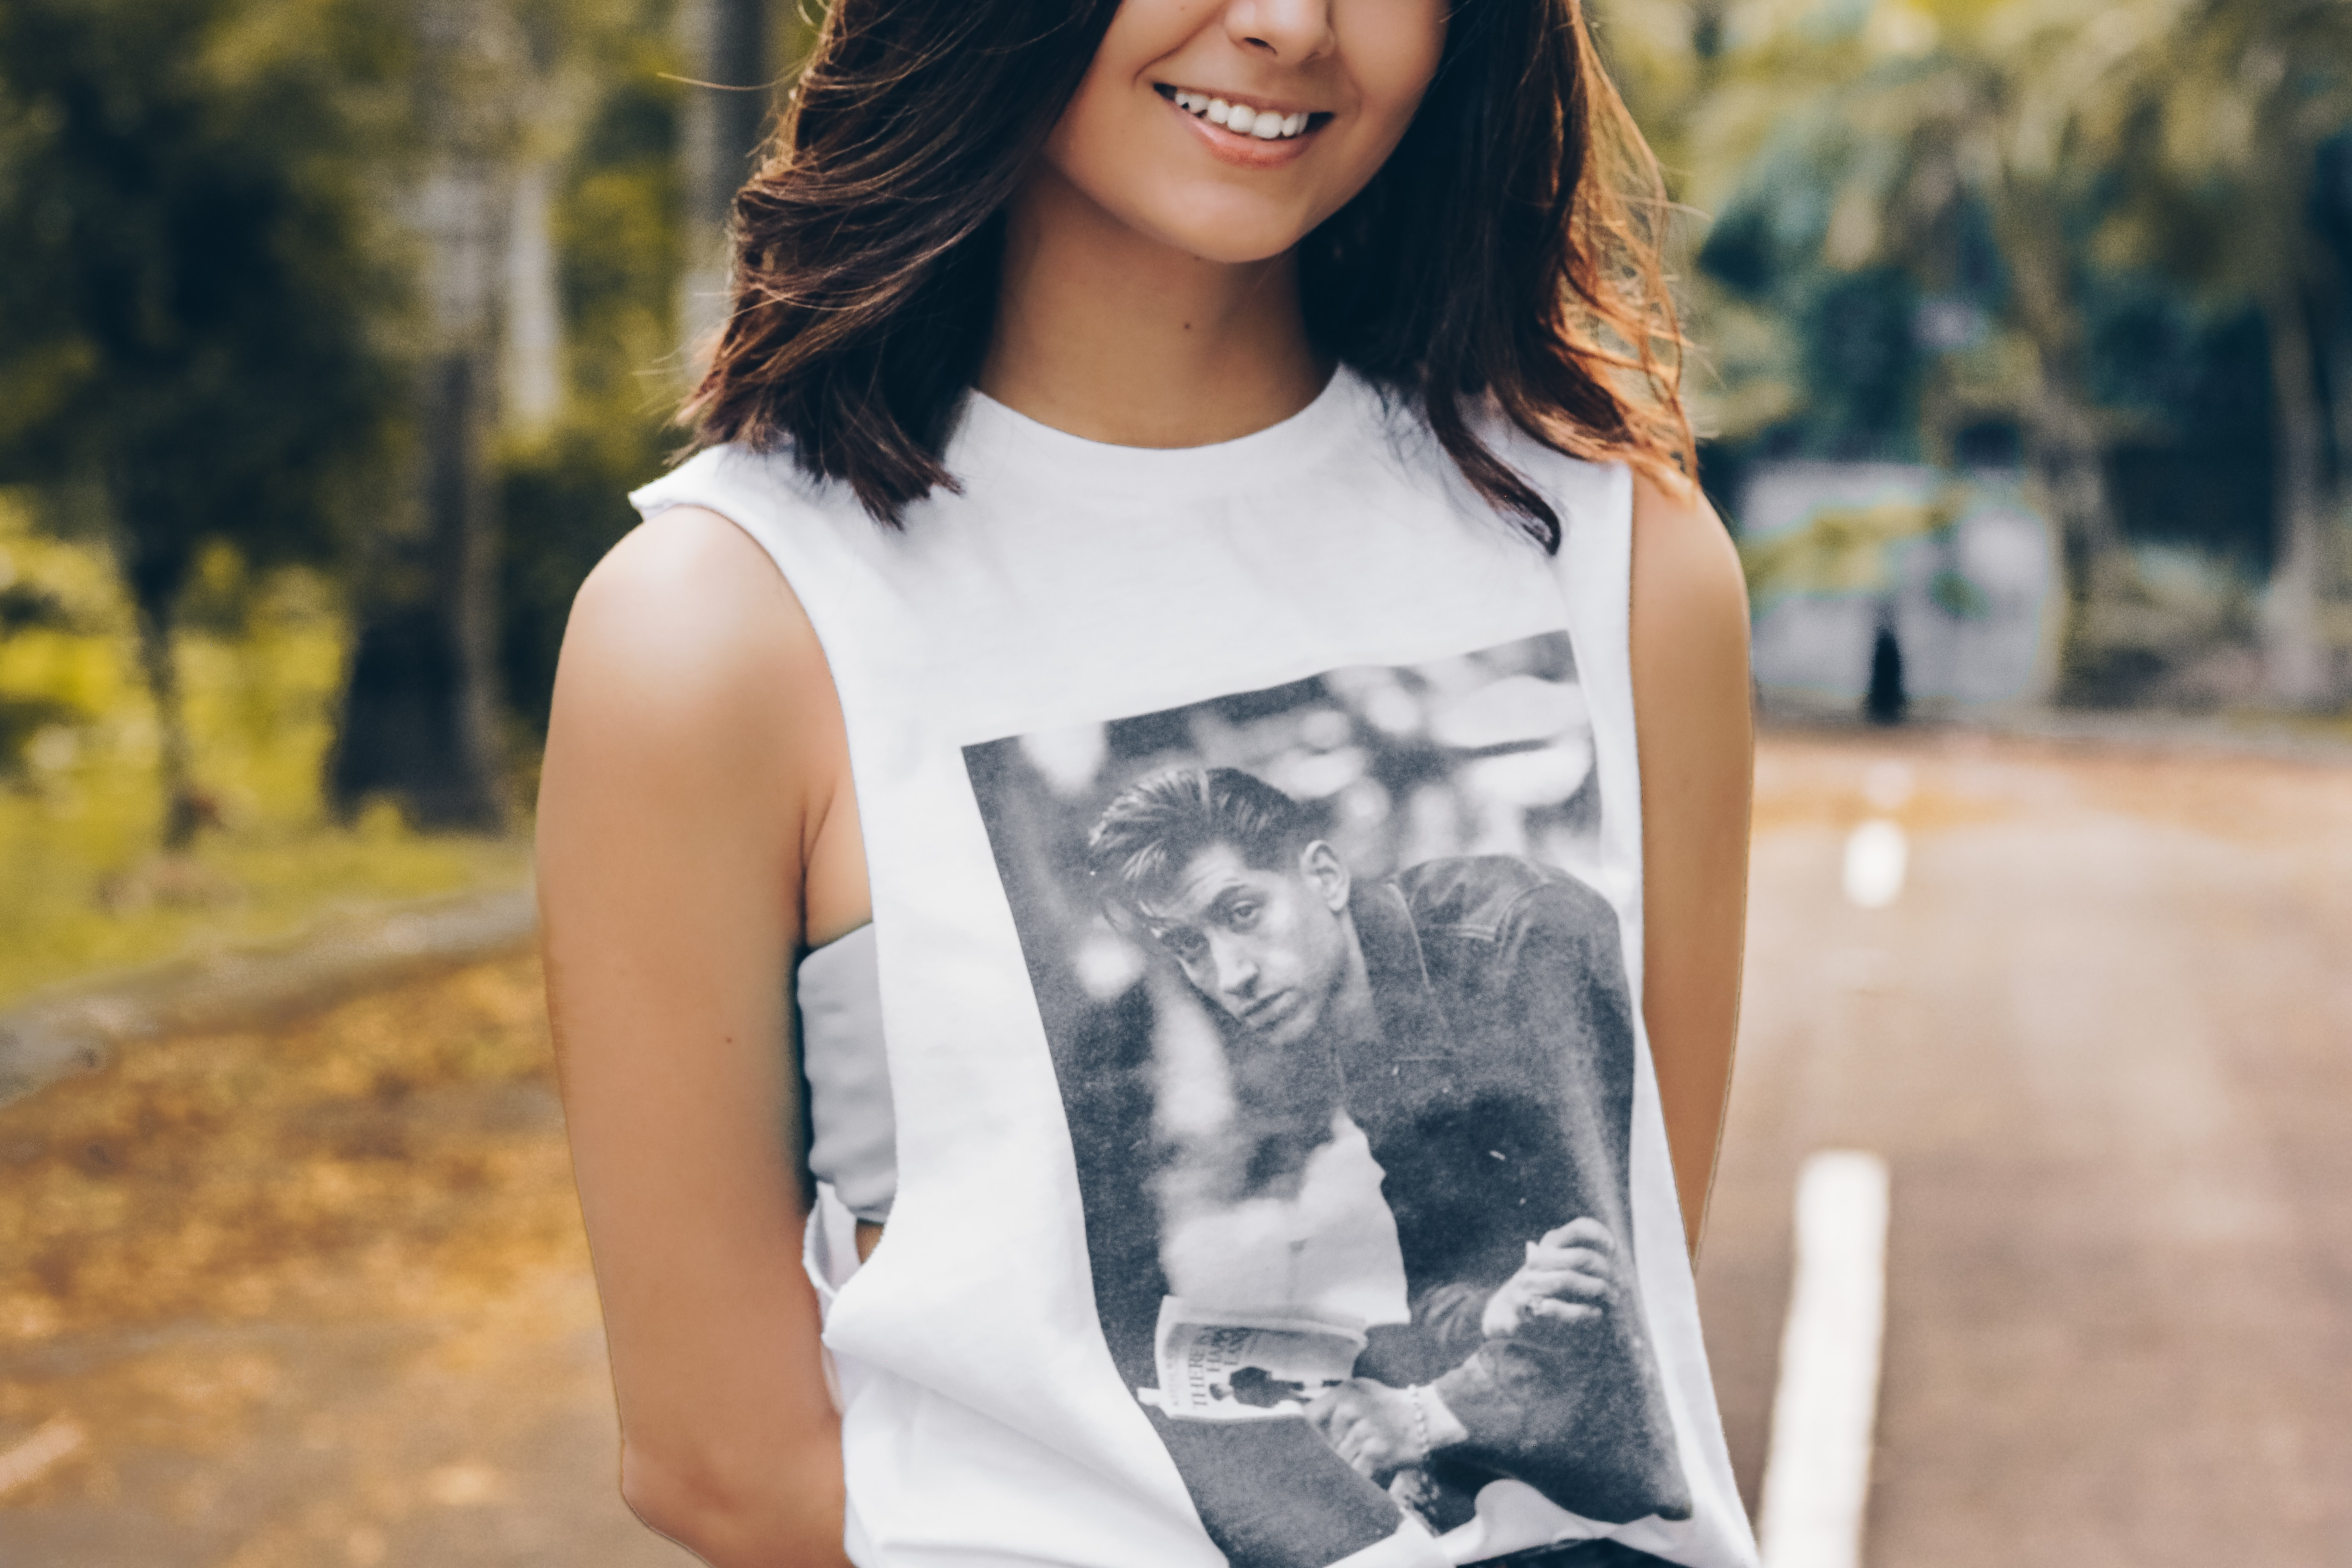 A smiling woman in an Arctic Monkeys tank top stands on a street by a park